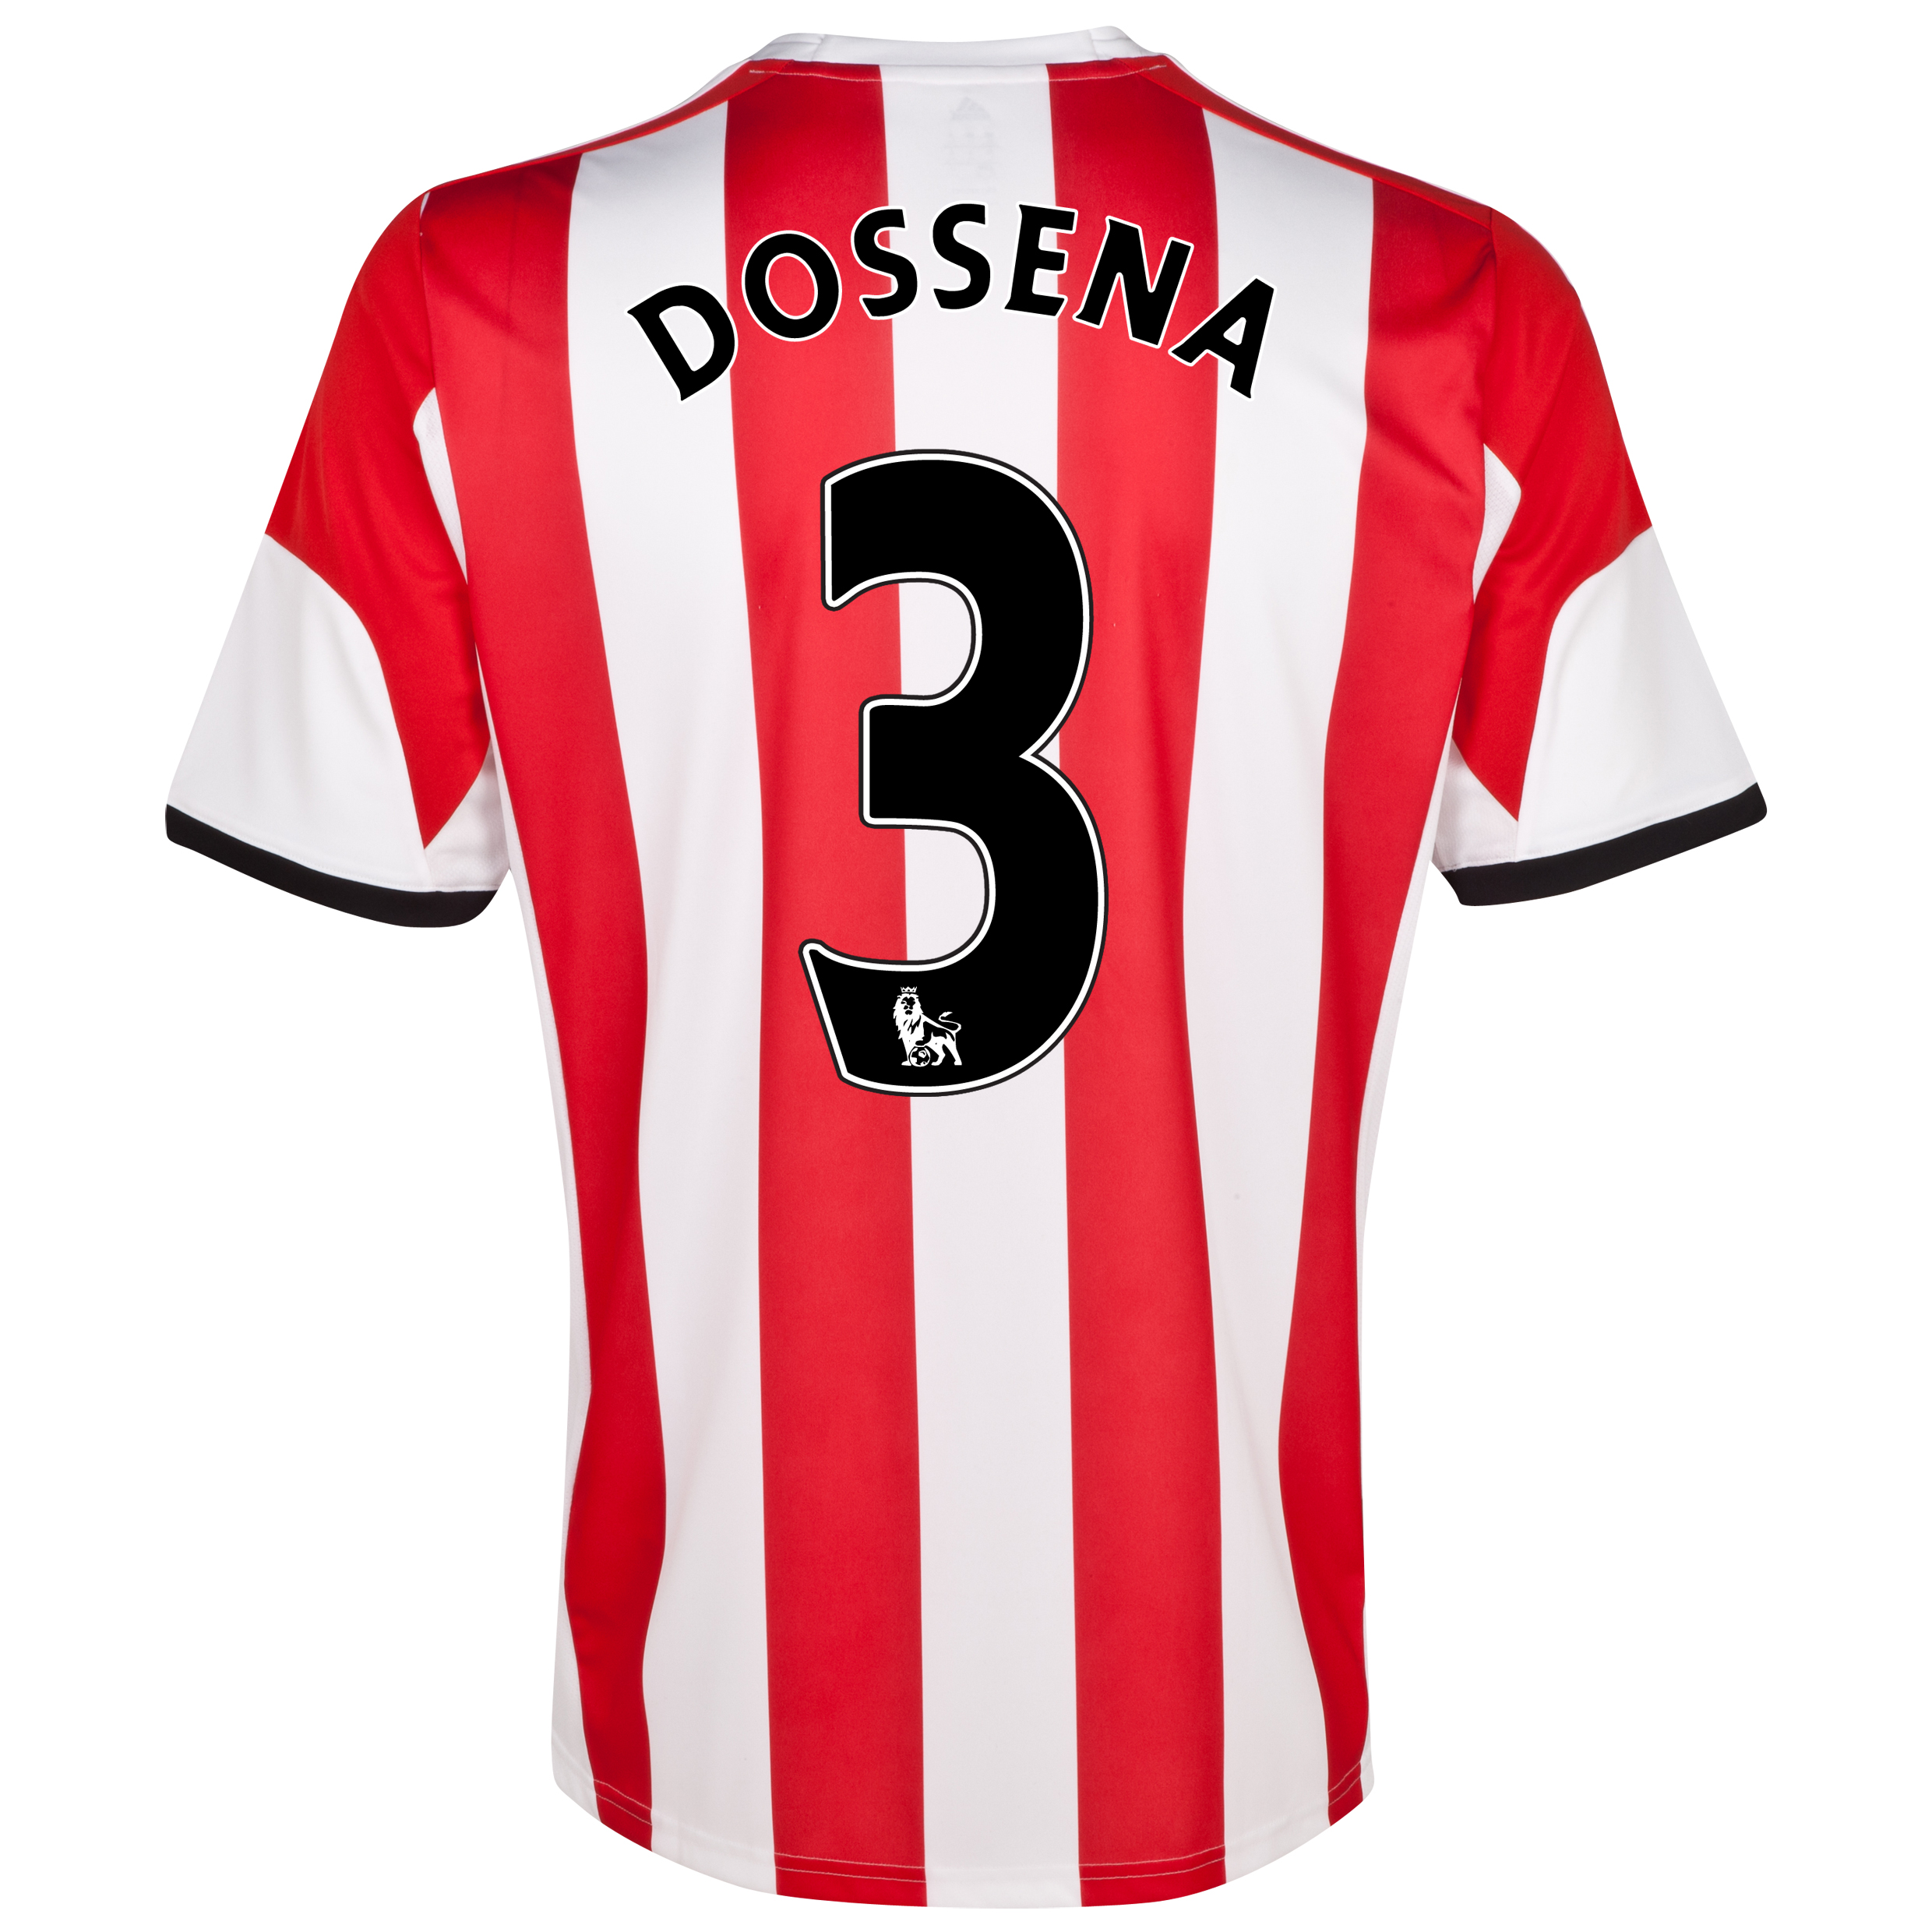 Sunderland Home Shirt 2013/14 with Dossena 3 printing